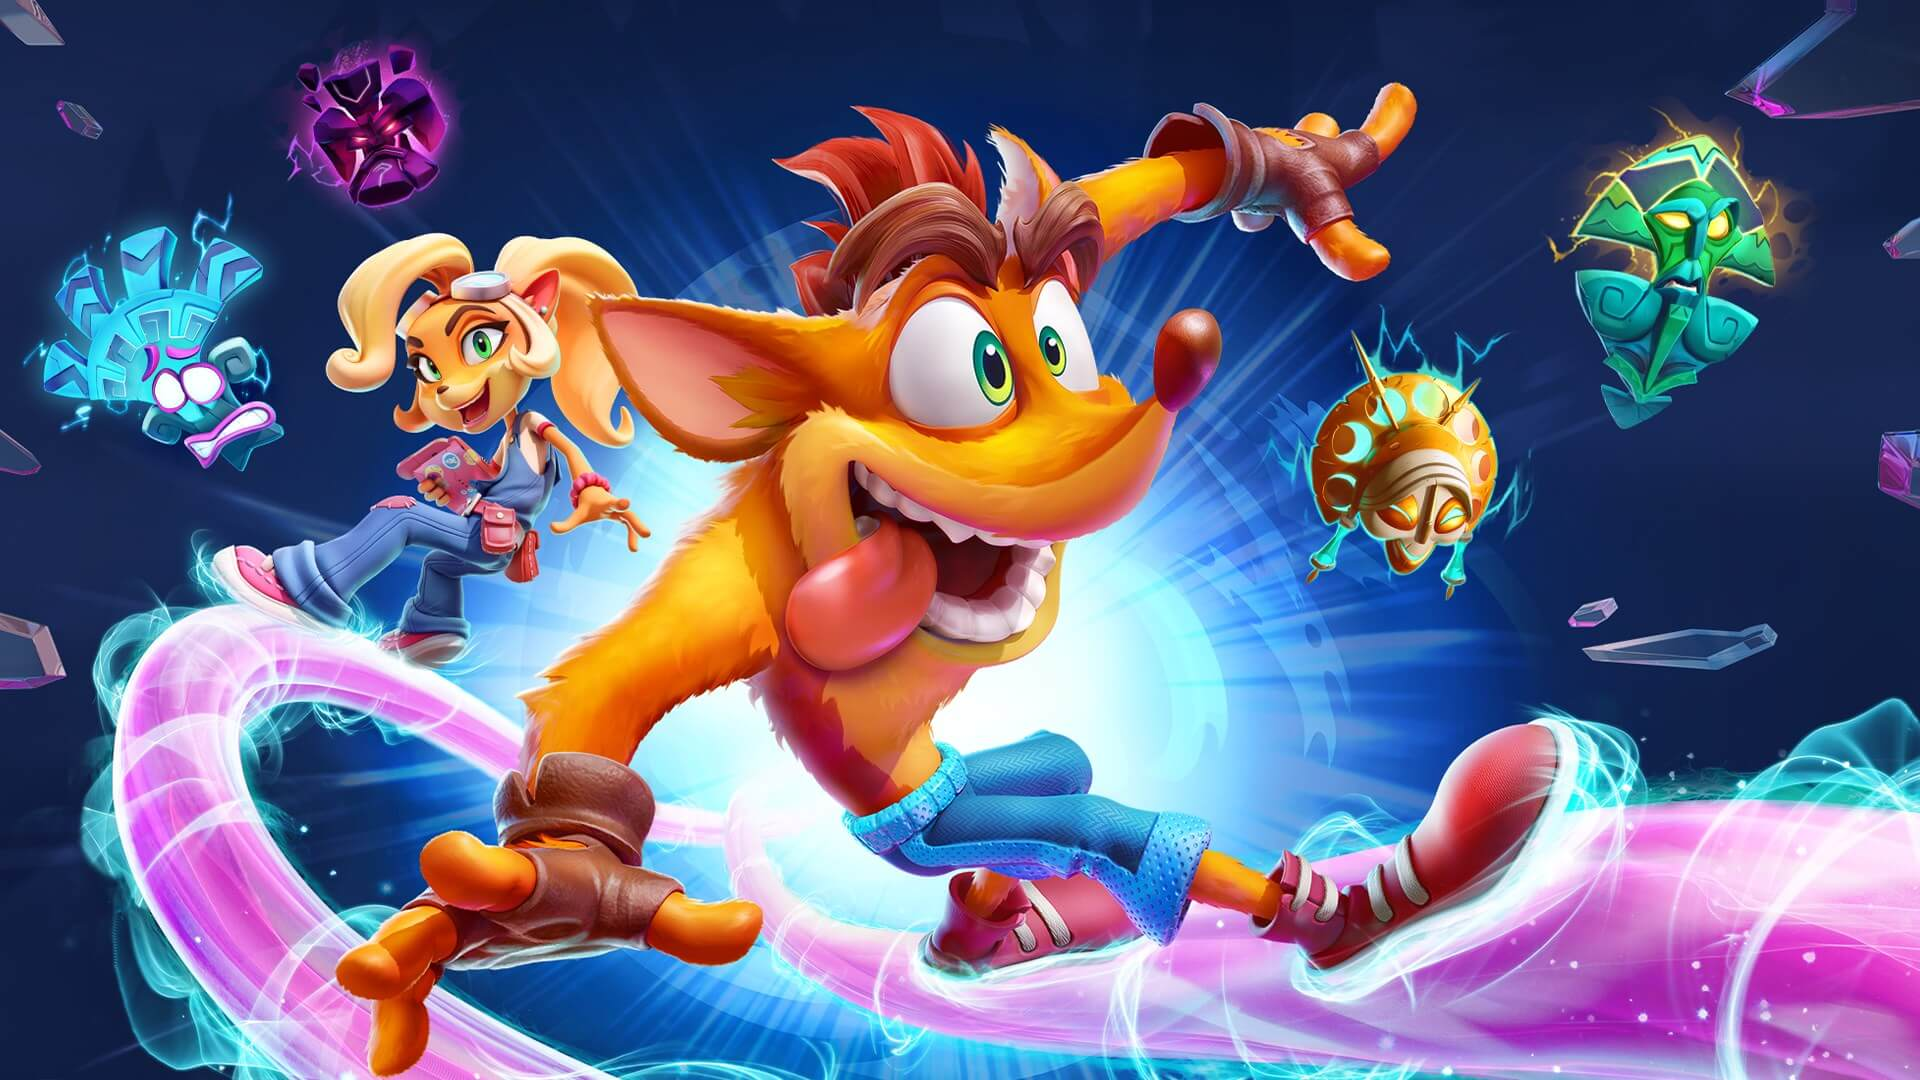 Upcoming Crash Bandicoot 4: It's About Time